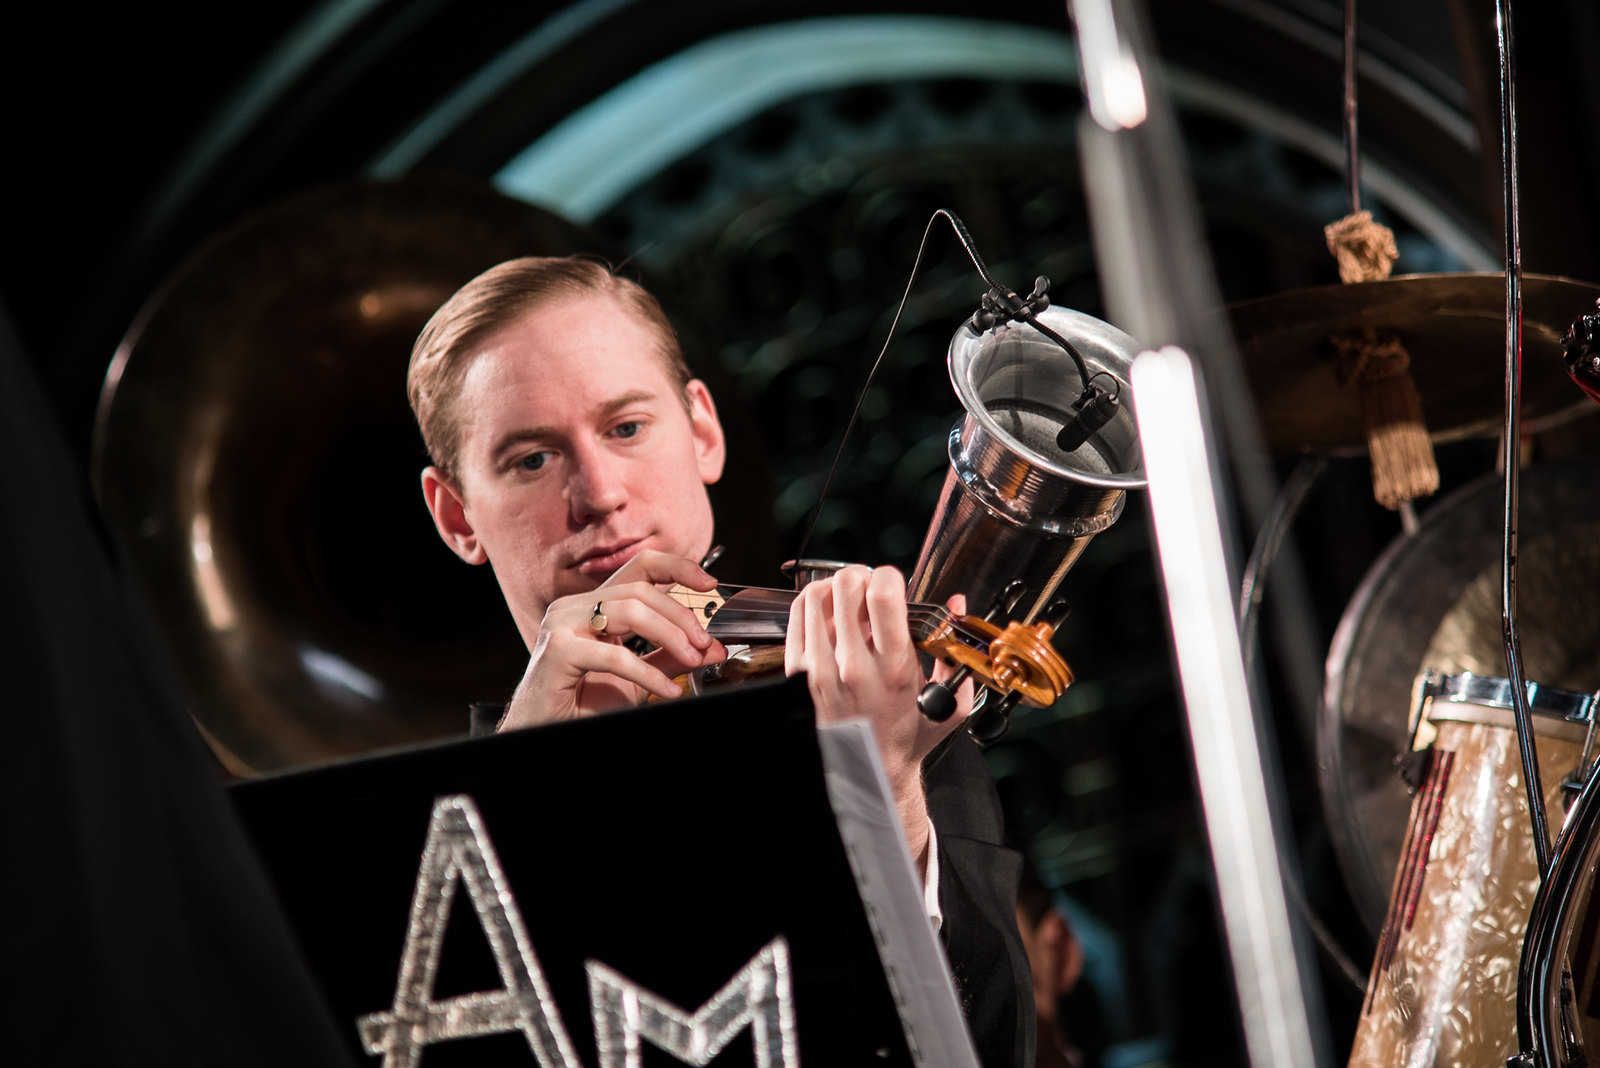 Daylight Music 217: Alex Mendham and His Orchestra